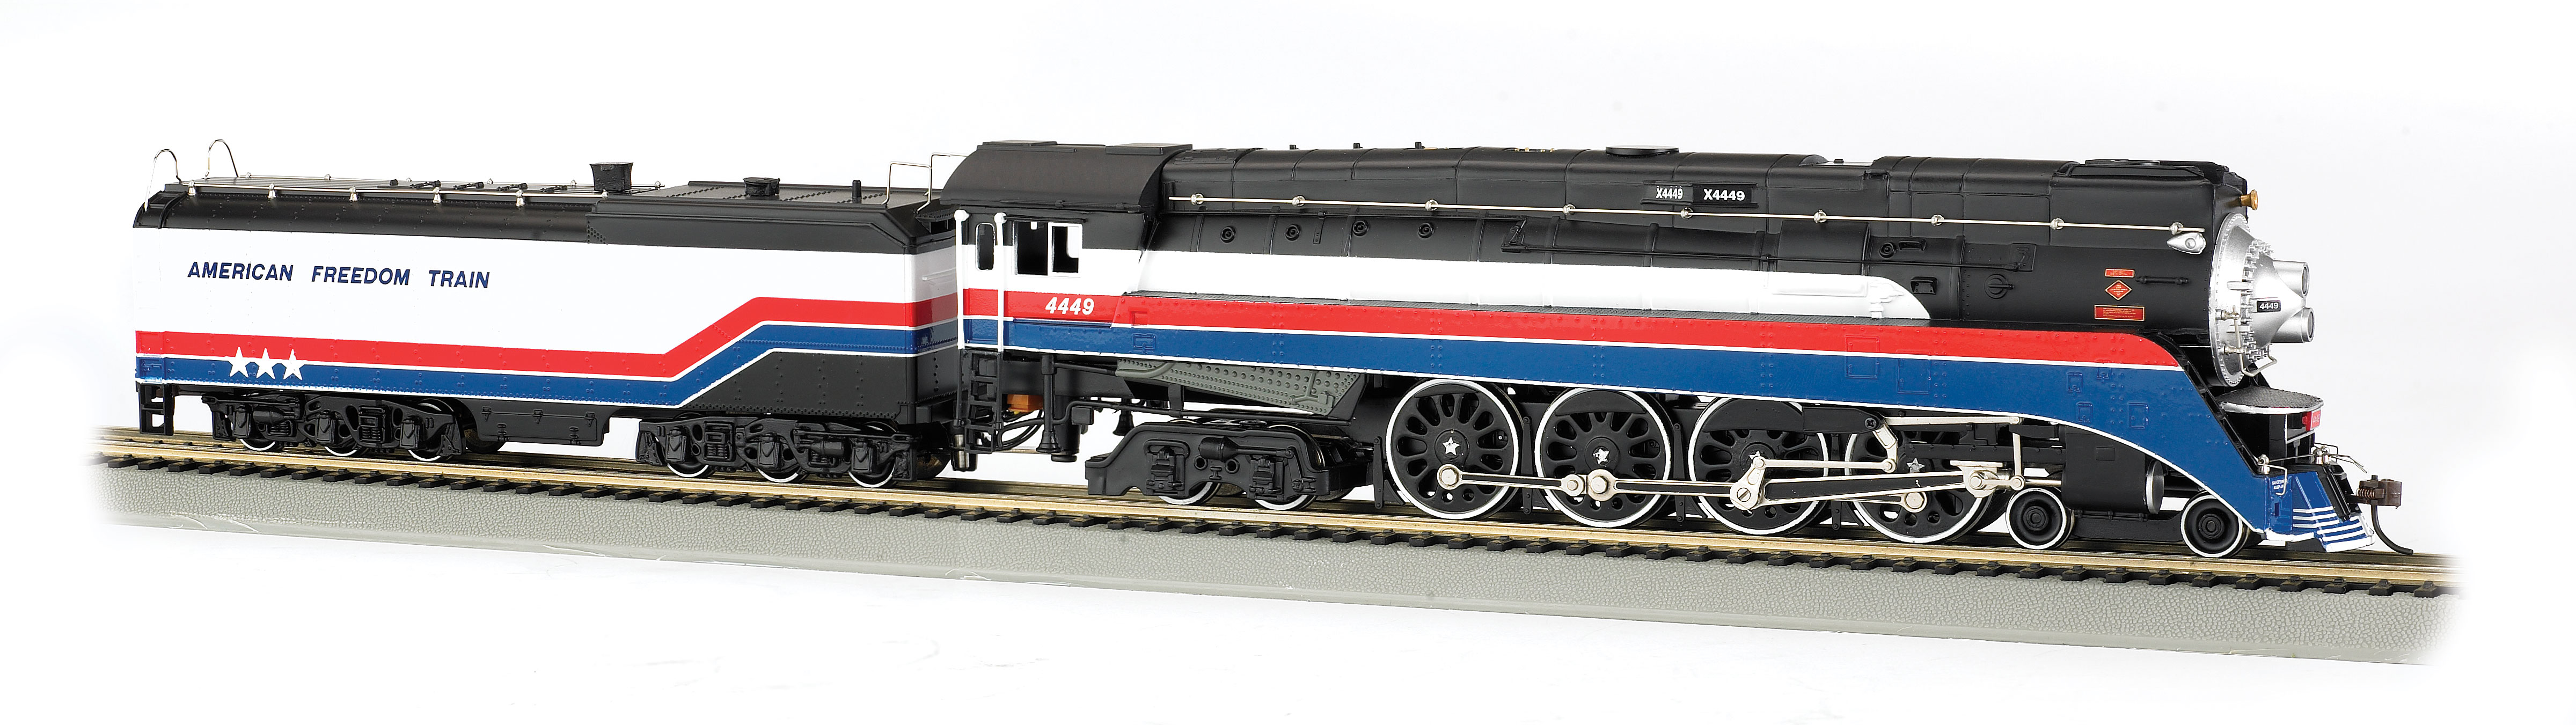 American Freedom Train #4449 - GS4 4-8-4 - DCC SOUND VALUE